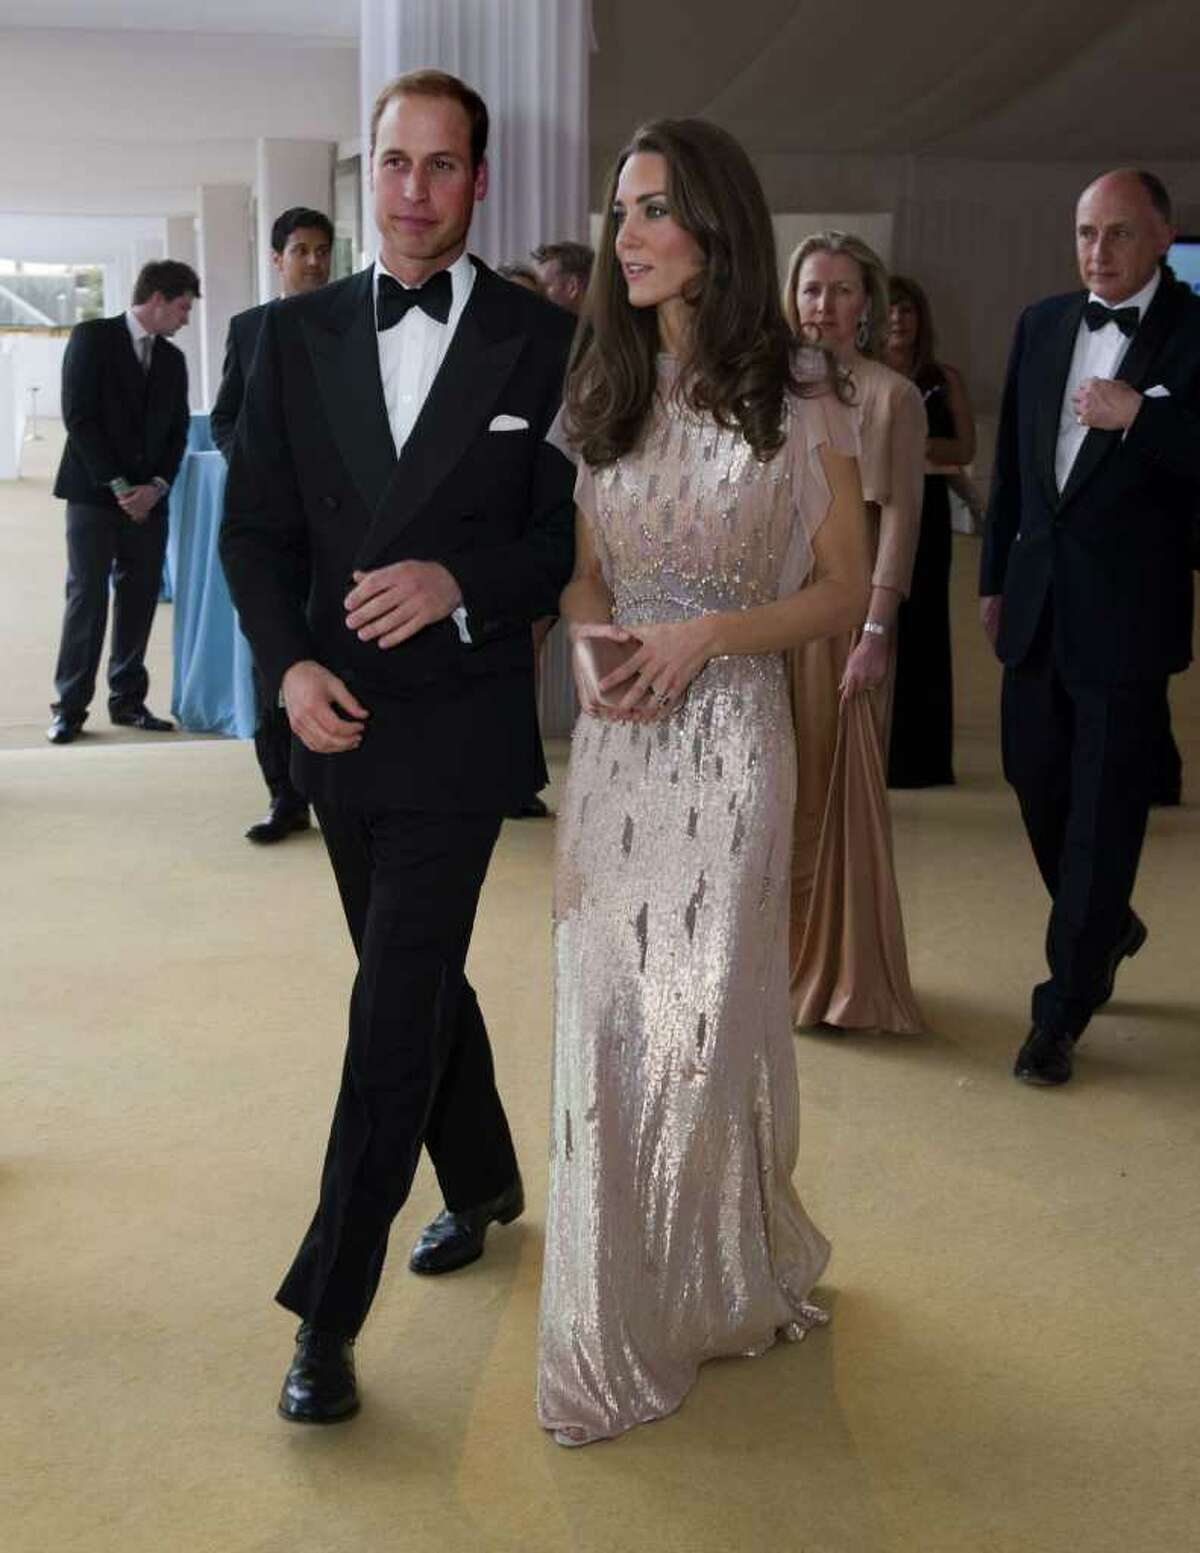 LONDON, ENGLAND - JUNE 09: Catherine, Duchess of Cambridge and Prince William, Duke of Cambridge arrive at the ARK 10th Anniversary Gala Dinner at Perk's Field on June 9, 2011 in London, England.